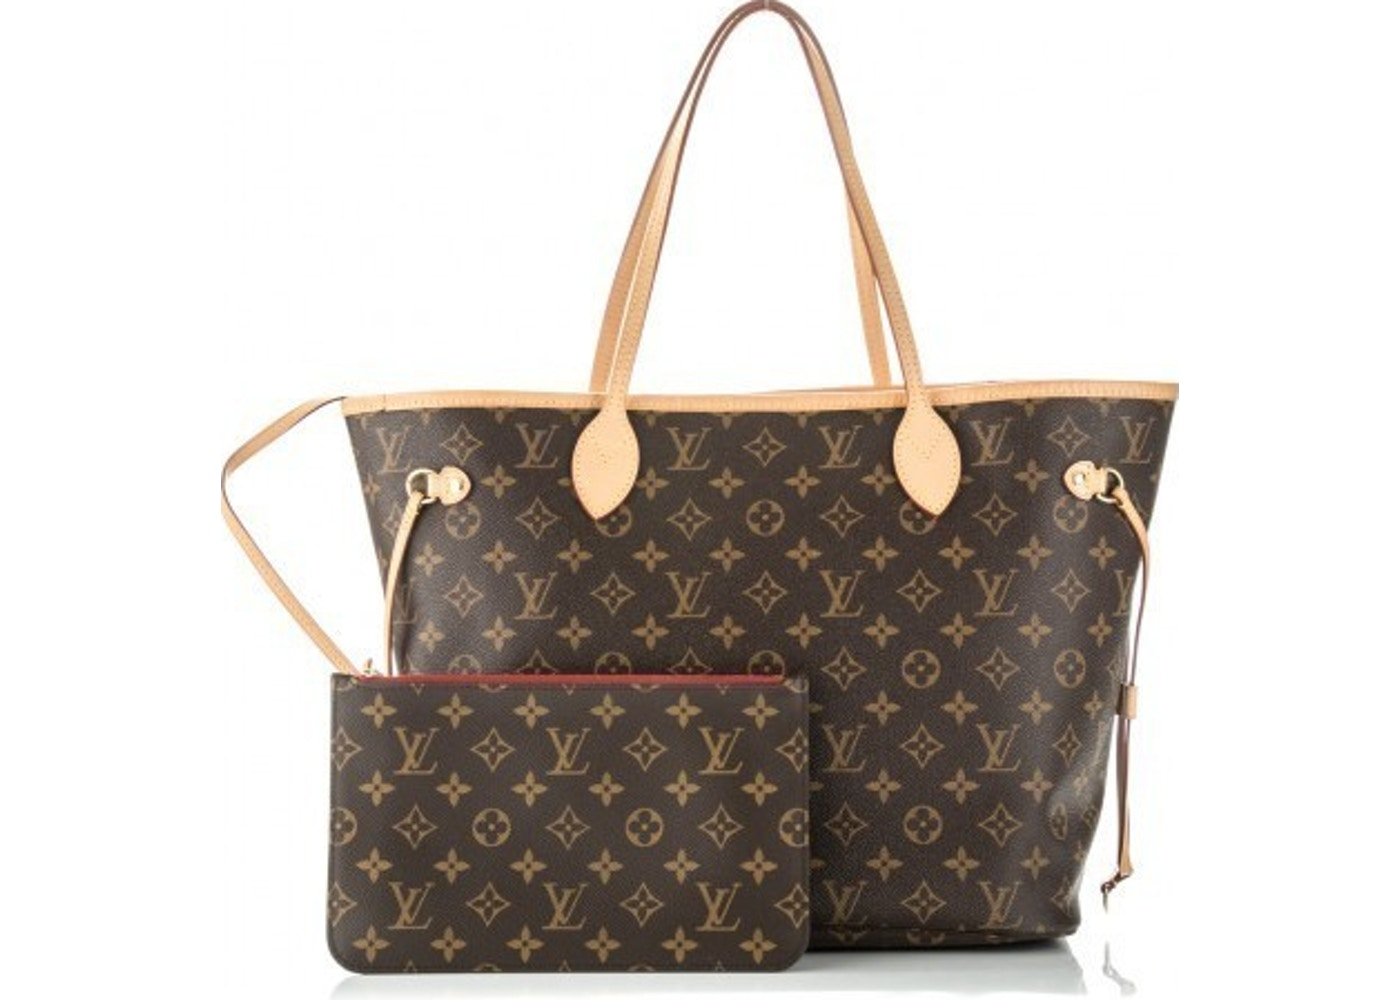 0956a06ff9d3 Louis Vuitton Neverfull Monogram MM (With Pouch) Cerise